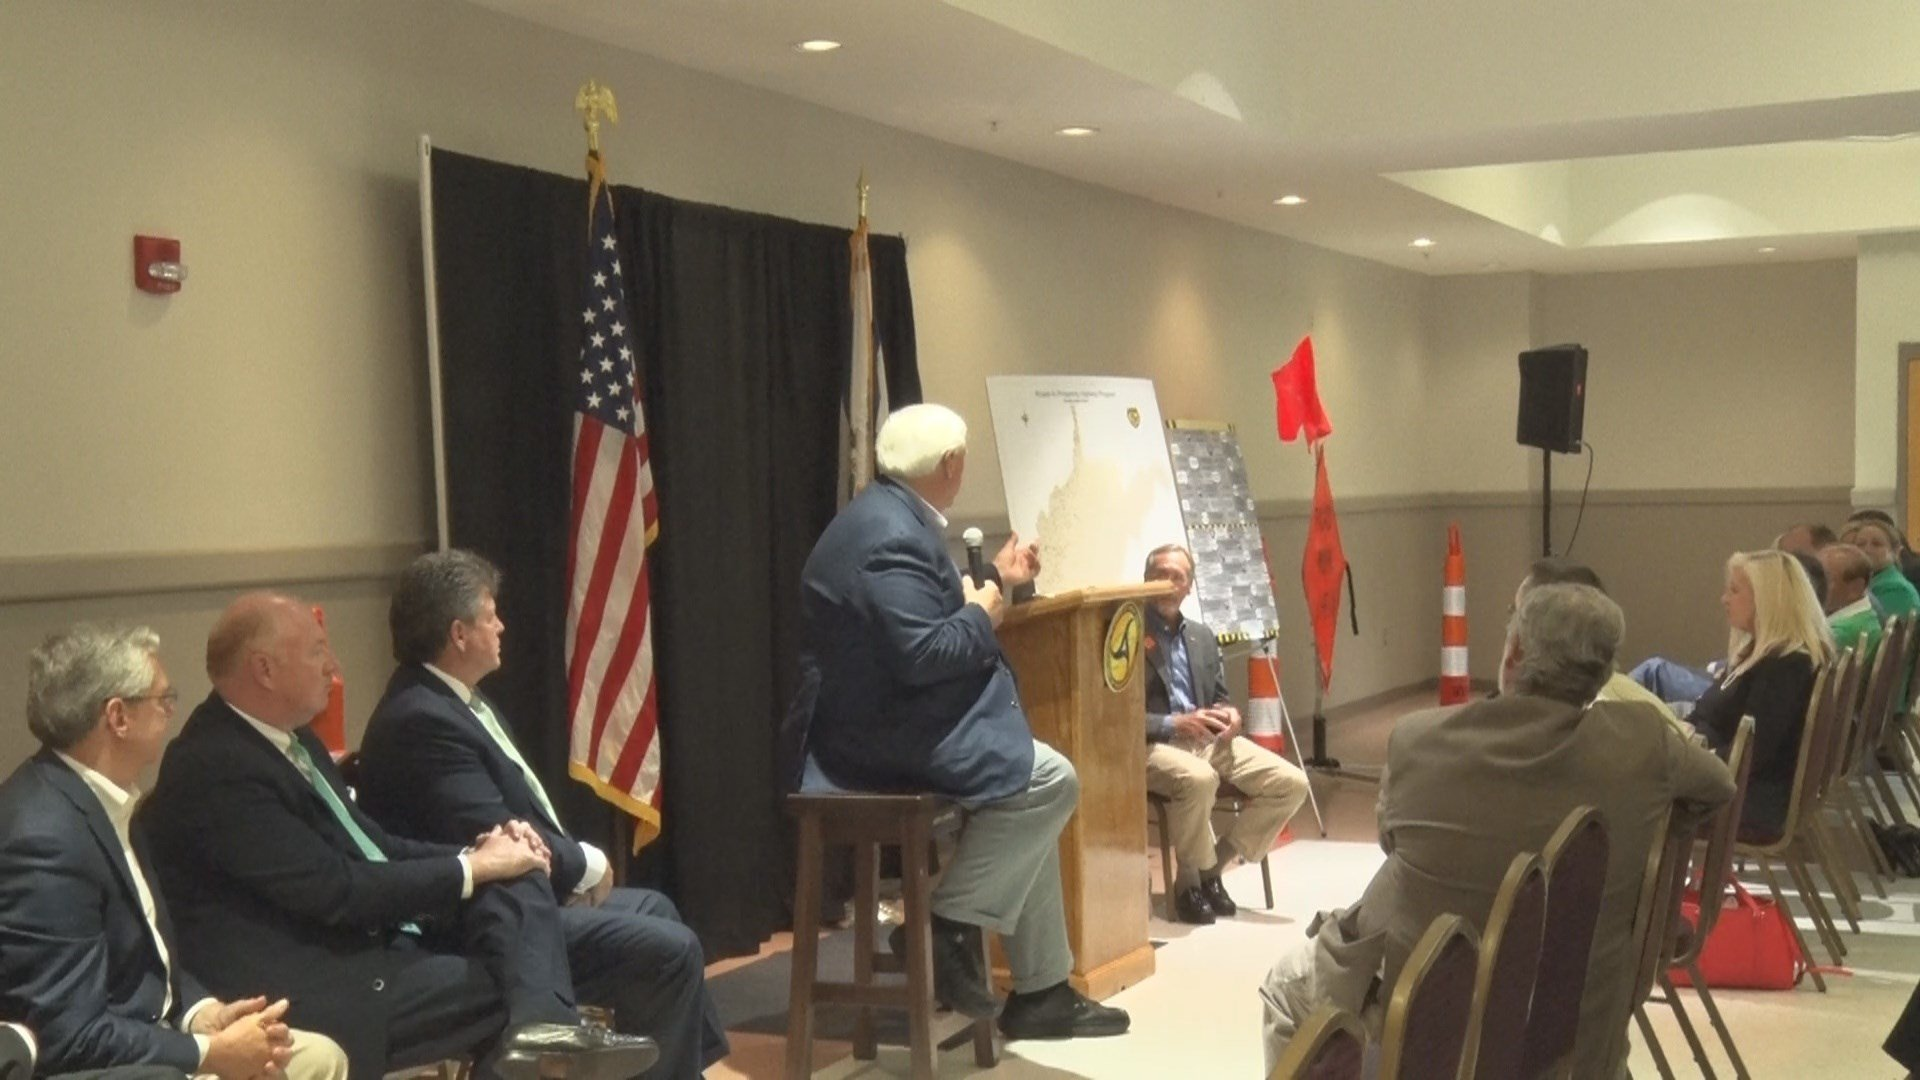 Gov Justice Talks Roads And Jobs At Beckley Town Hall